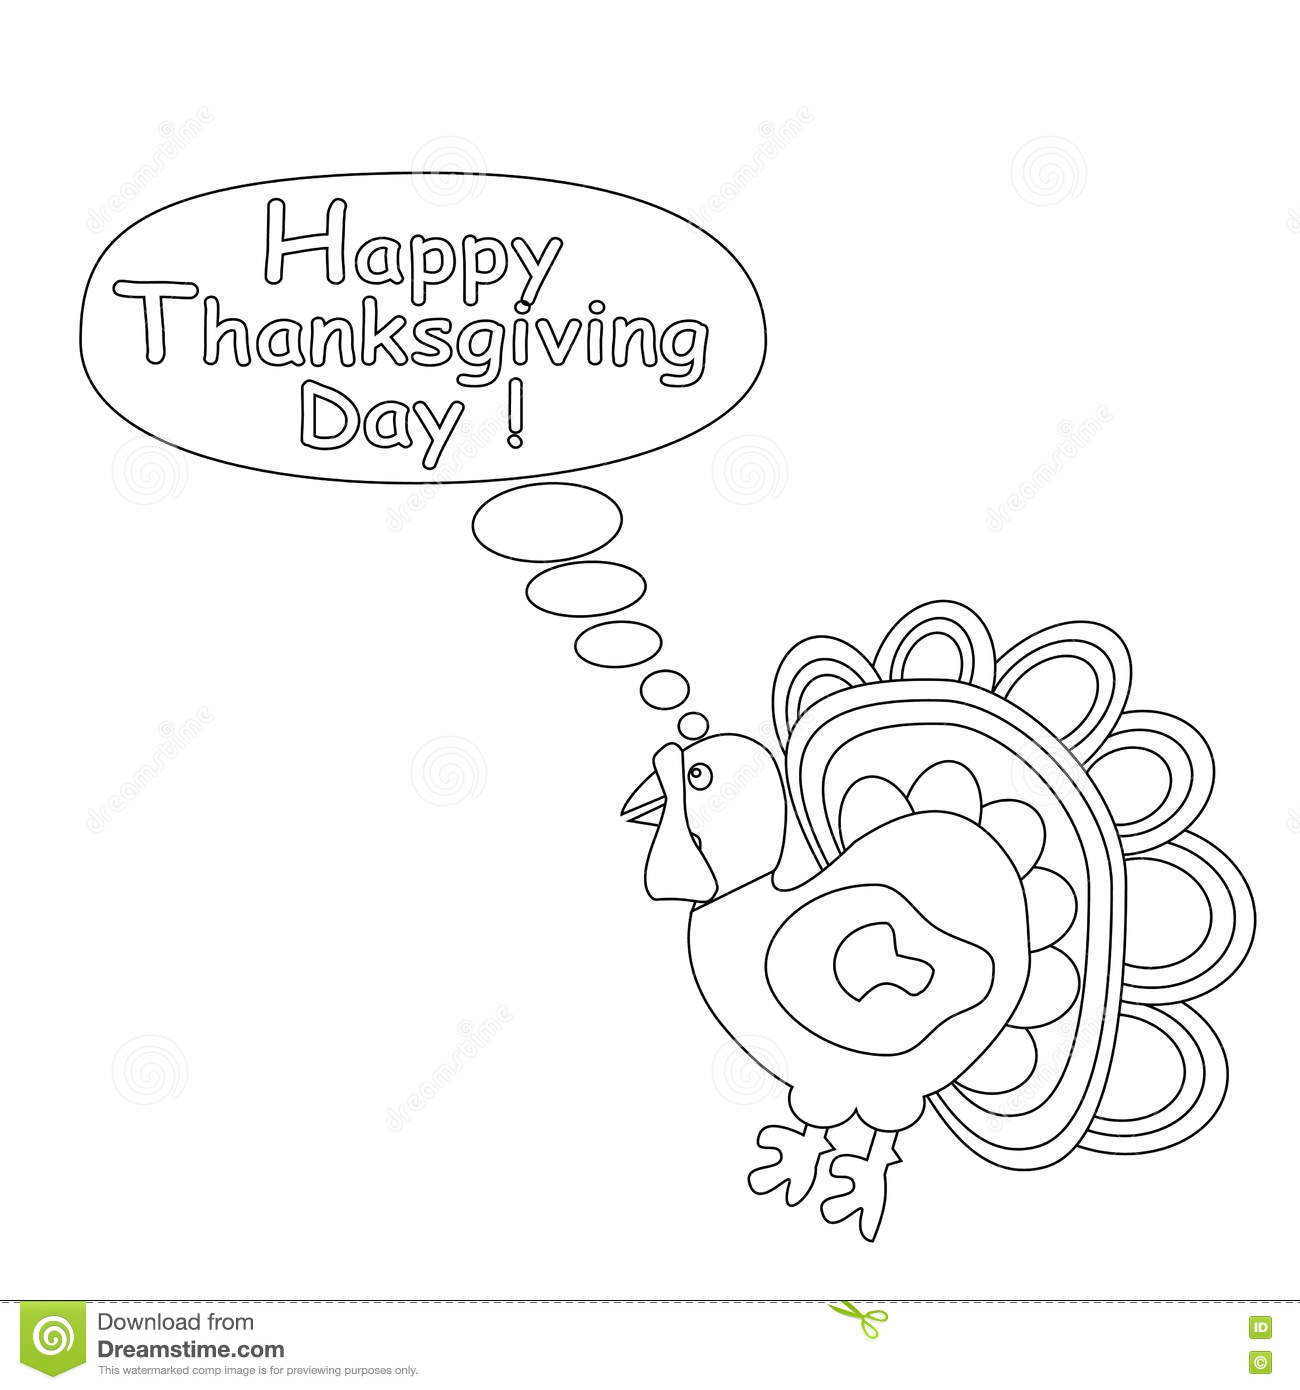 Outlined cartoon turkey happy thanksgiving day concept kids